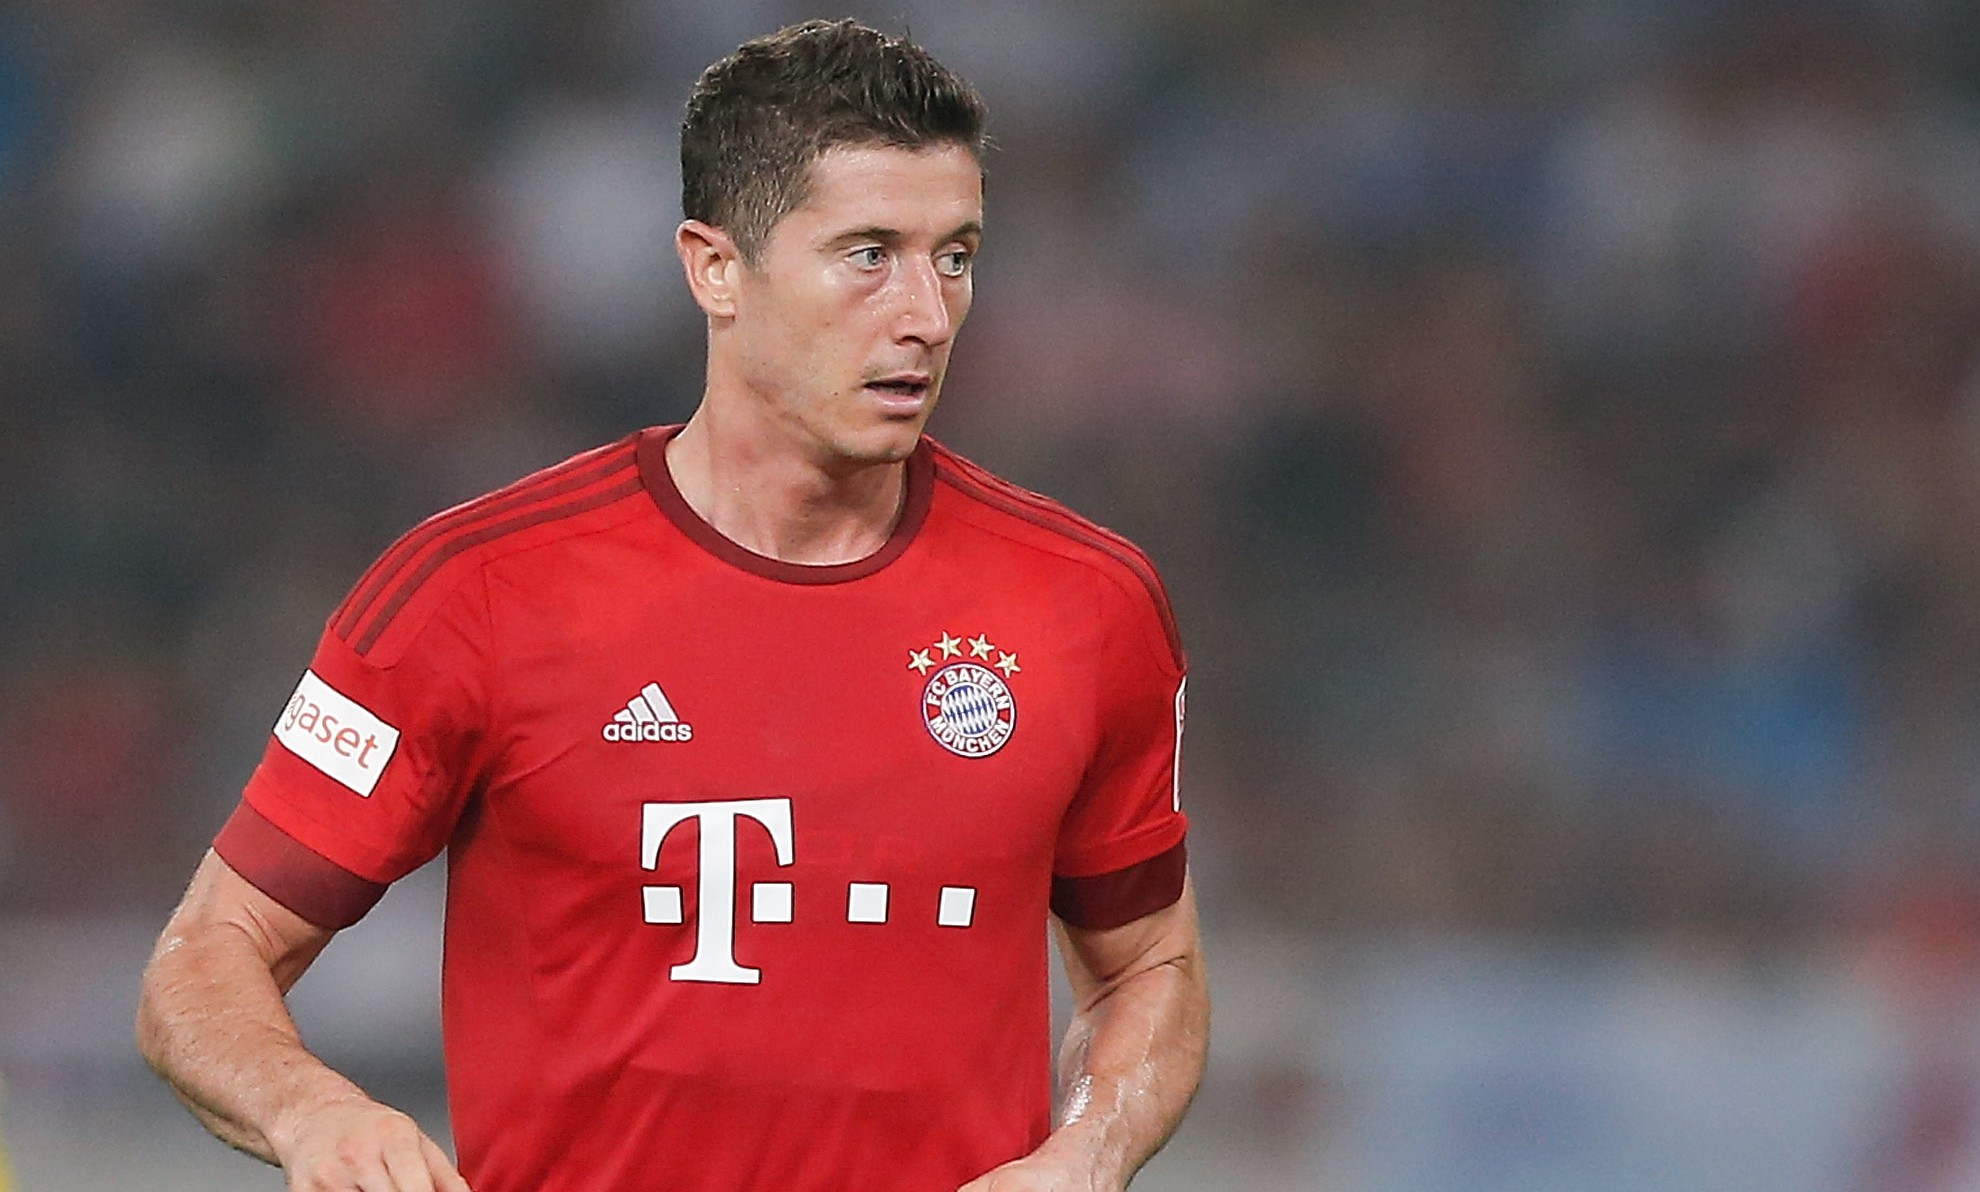 SHANGHAI, CHINA - JULY 21:  Robert Lewandowski of FC Bayern Muenchen in action during the international friendly match between FC Bayern Muenchen and Inter Milan of the Audi Football Summit 2015 at Shanghai Stadium on July 21, 2015 in Shanghai, China.  (Photo by Lintao Zhang/Getty Images)